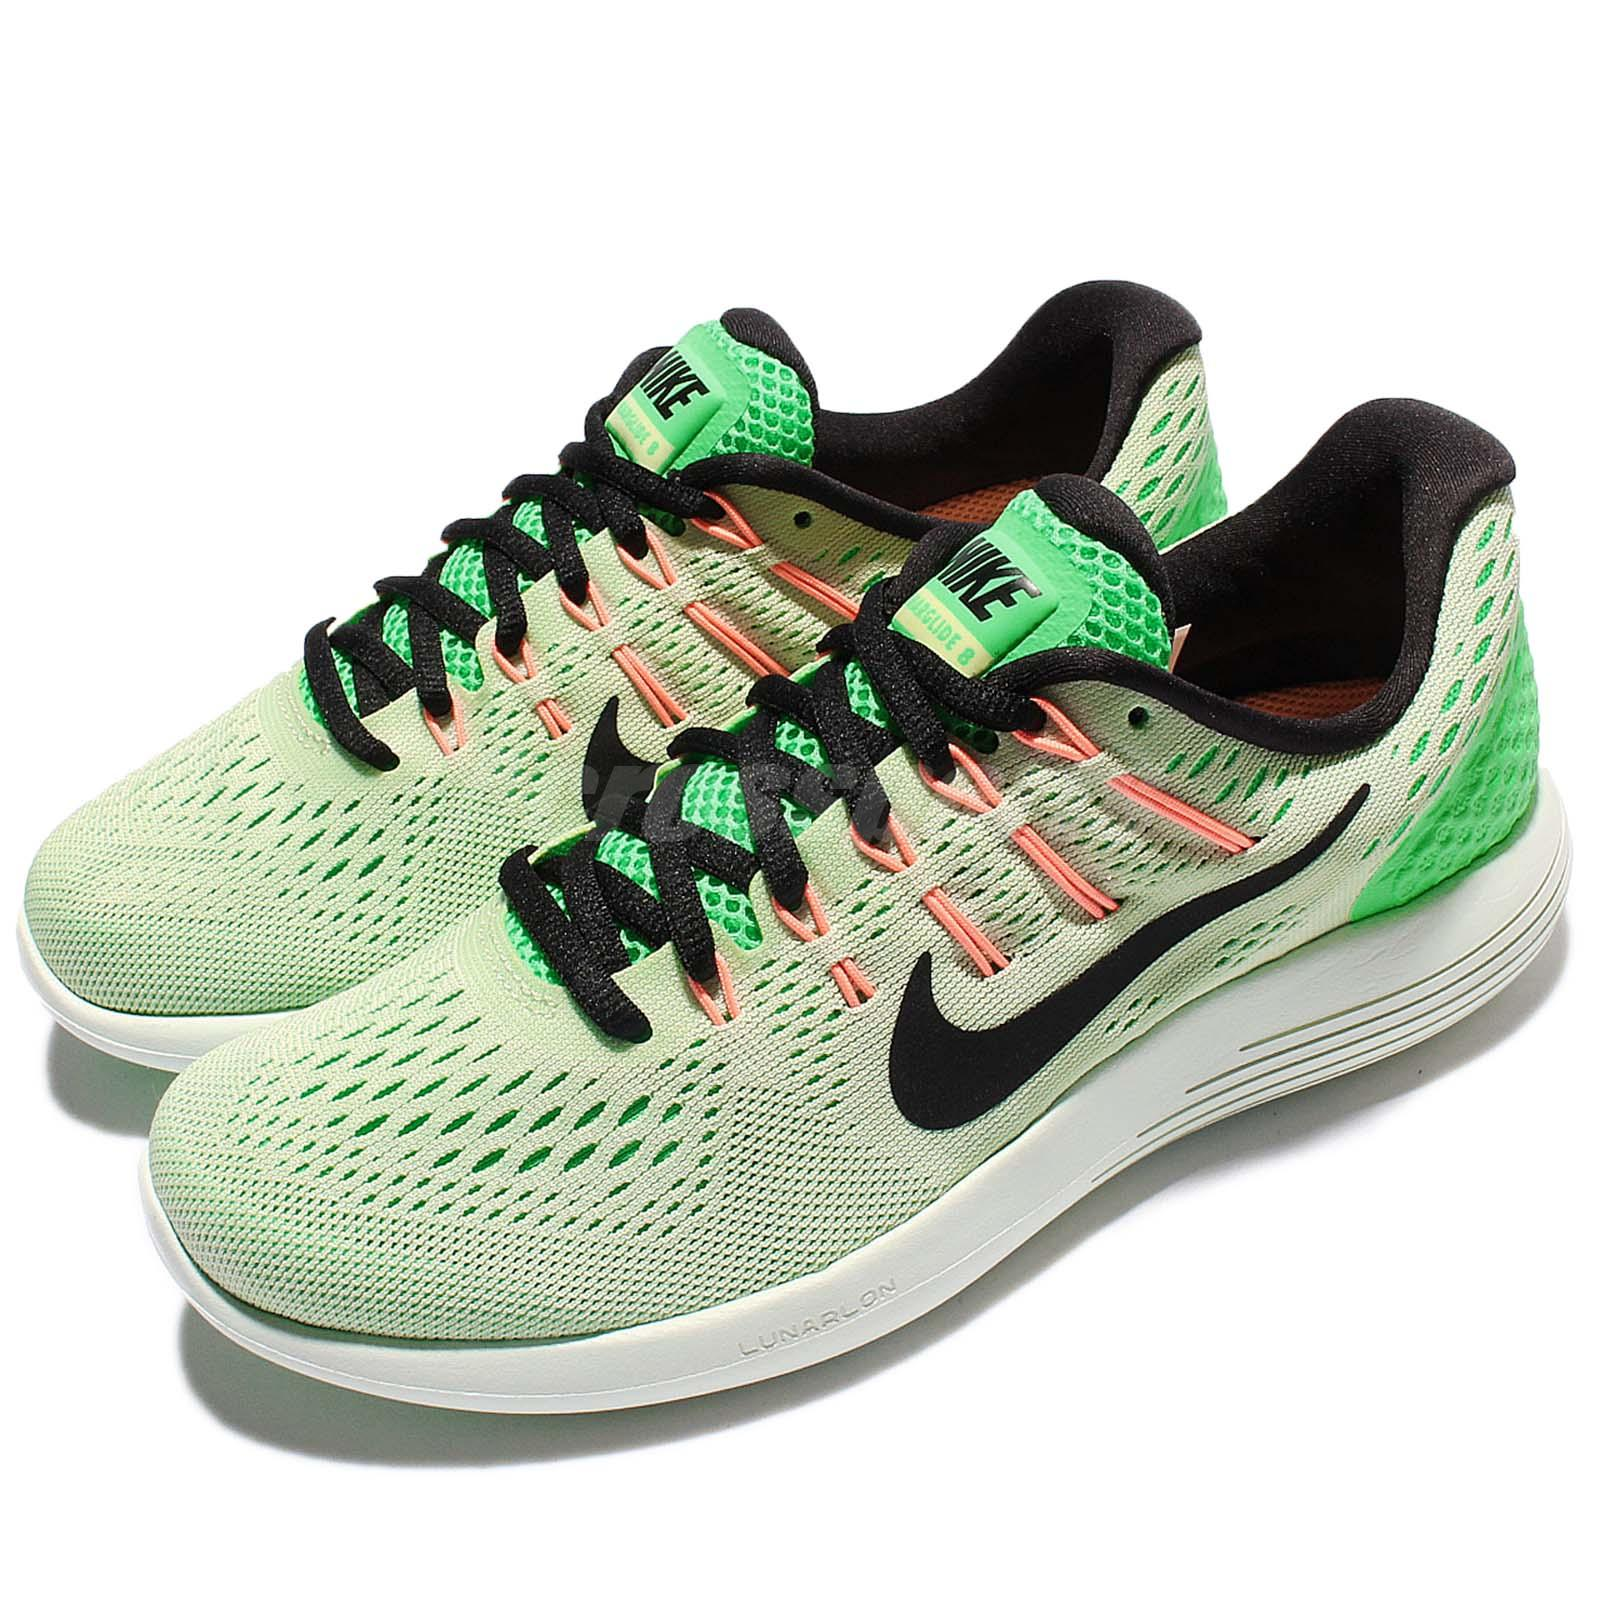 size 40 bb0c0 a1a29 Details about Wmns Nike Lunarglide 8 VIII Green Black Women Running Shoes  Sneakers 843726-302